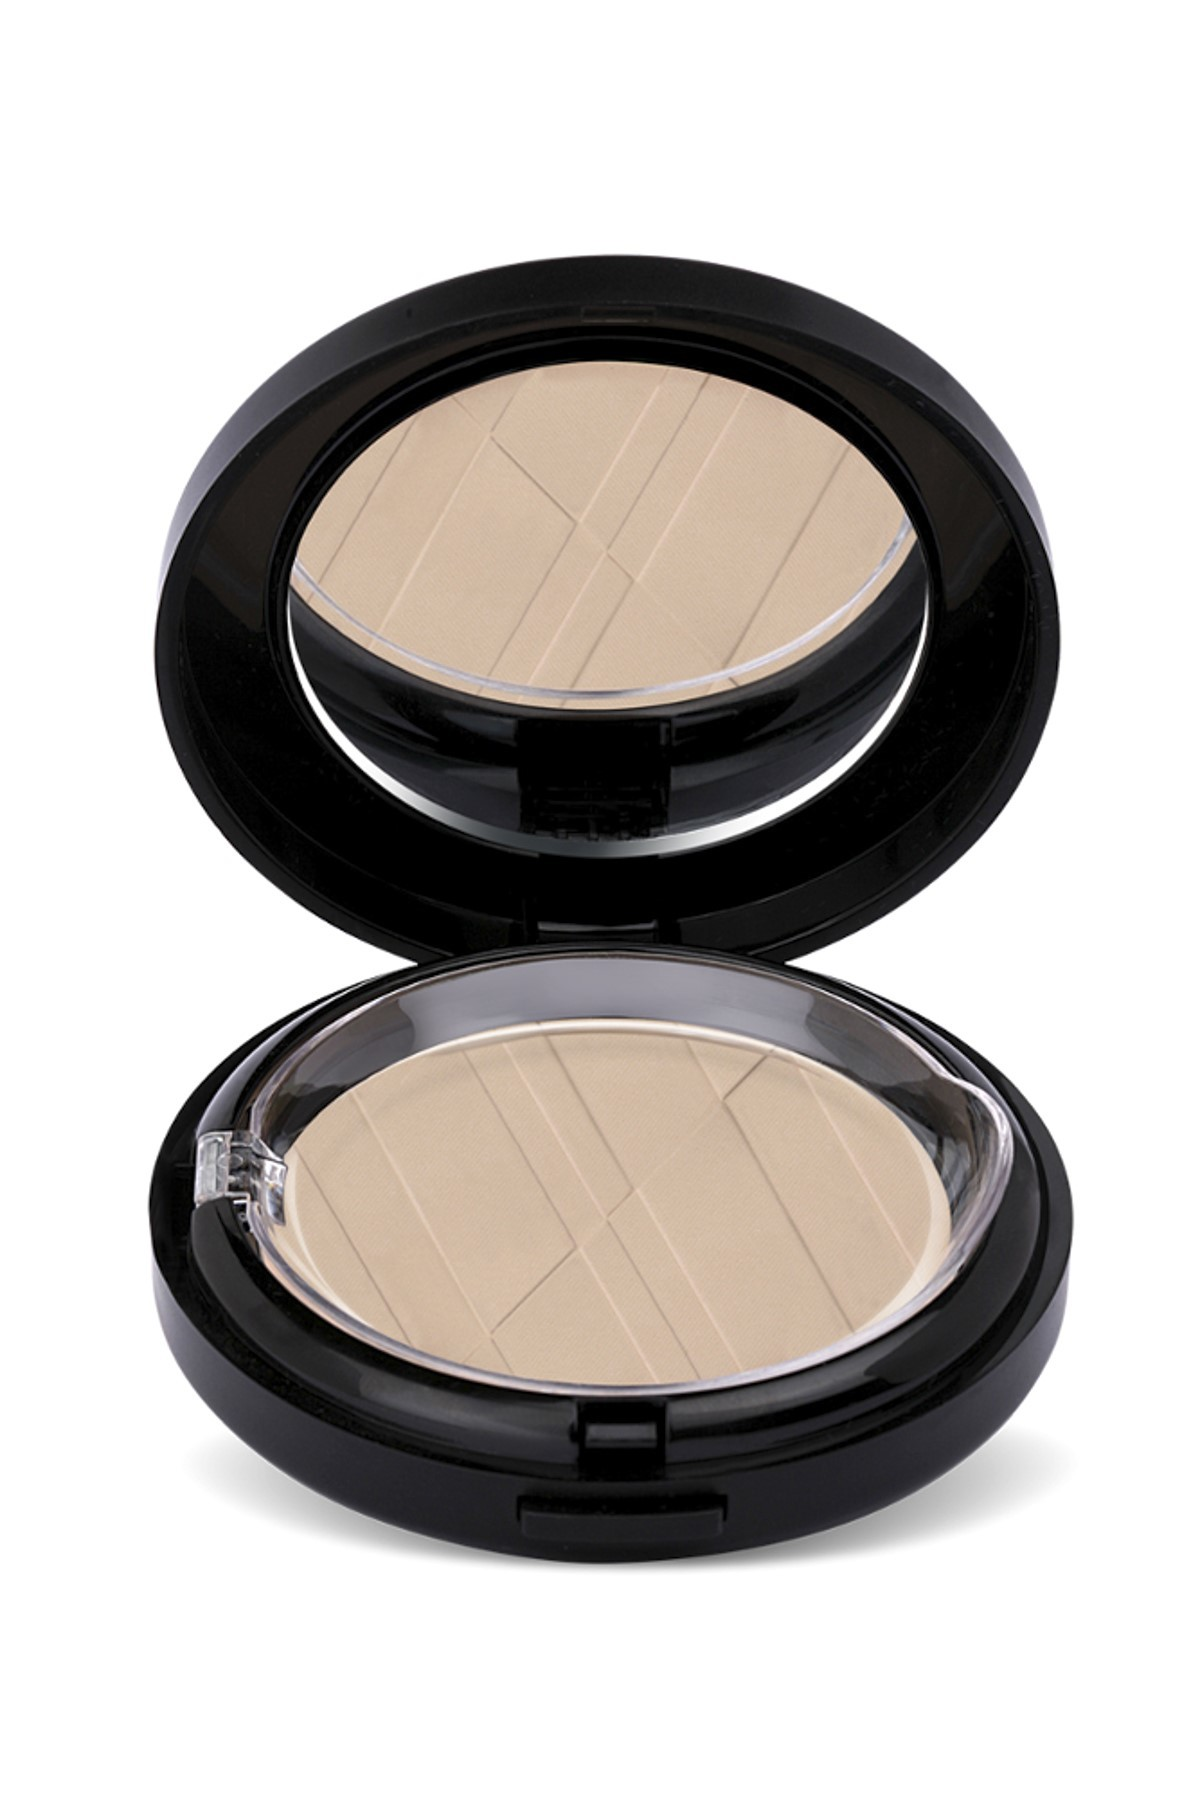 Golden Rose Mat Pudra – Longstay Matte Face Powder No: 07 8691190005870 – 46.99 TL